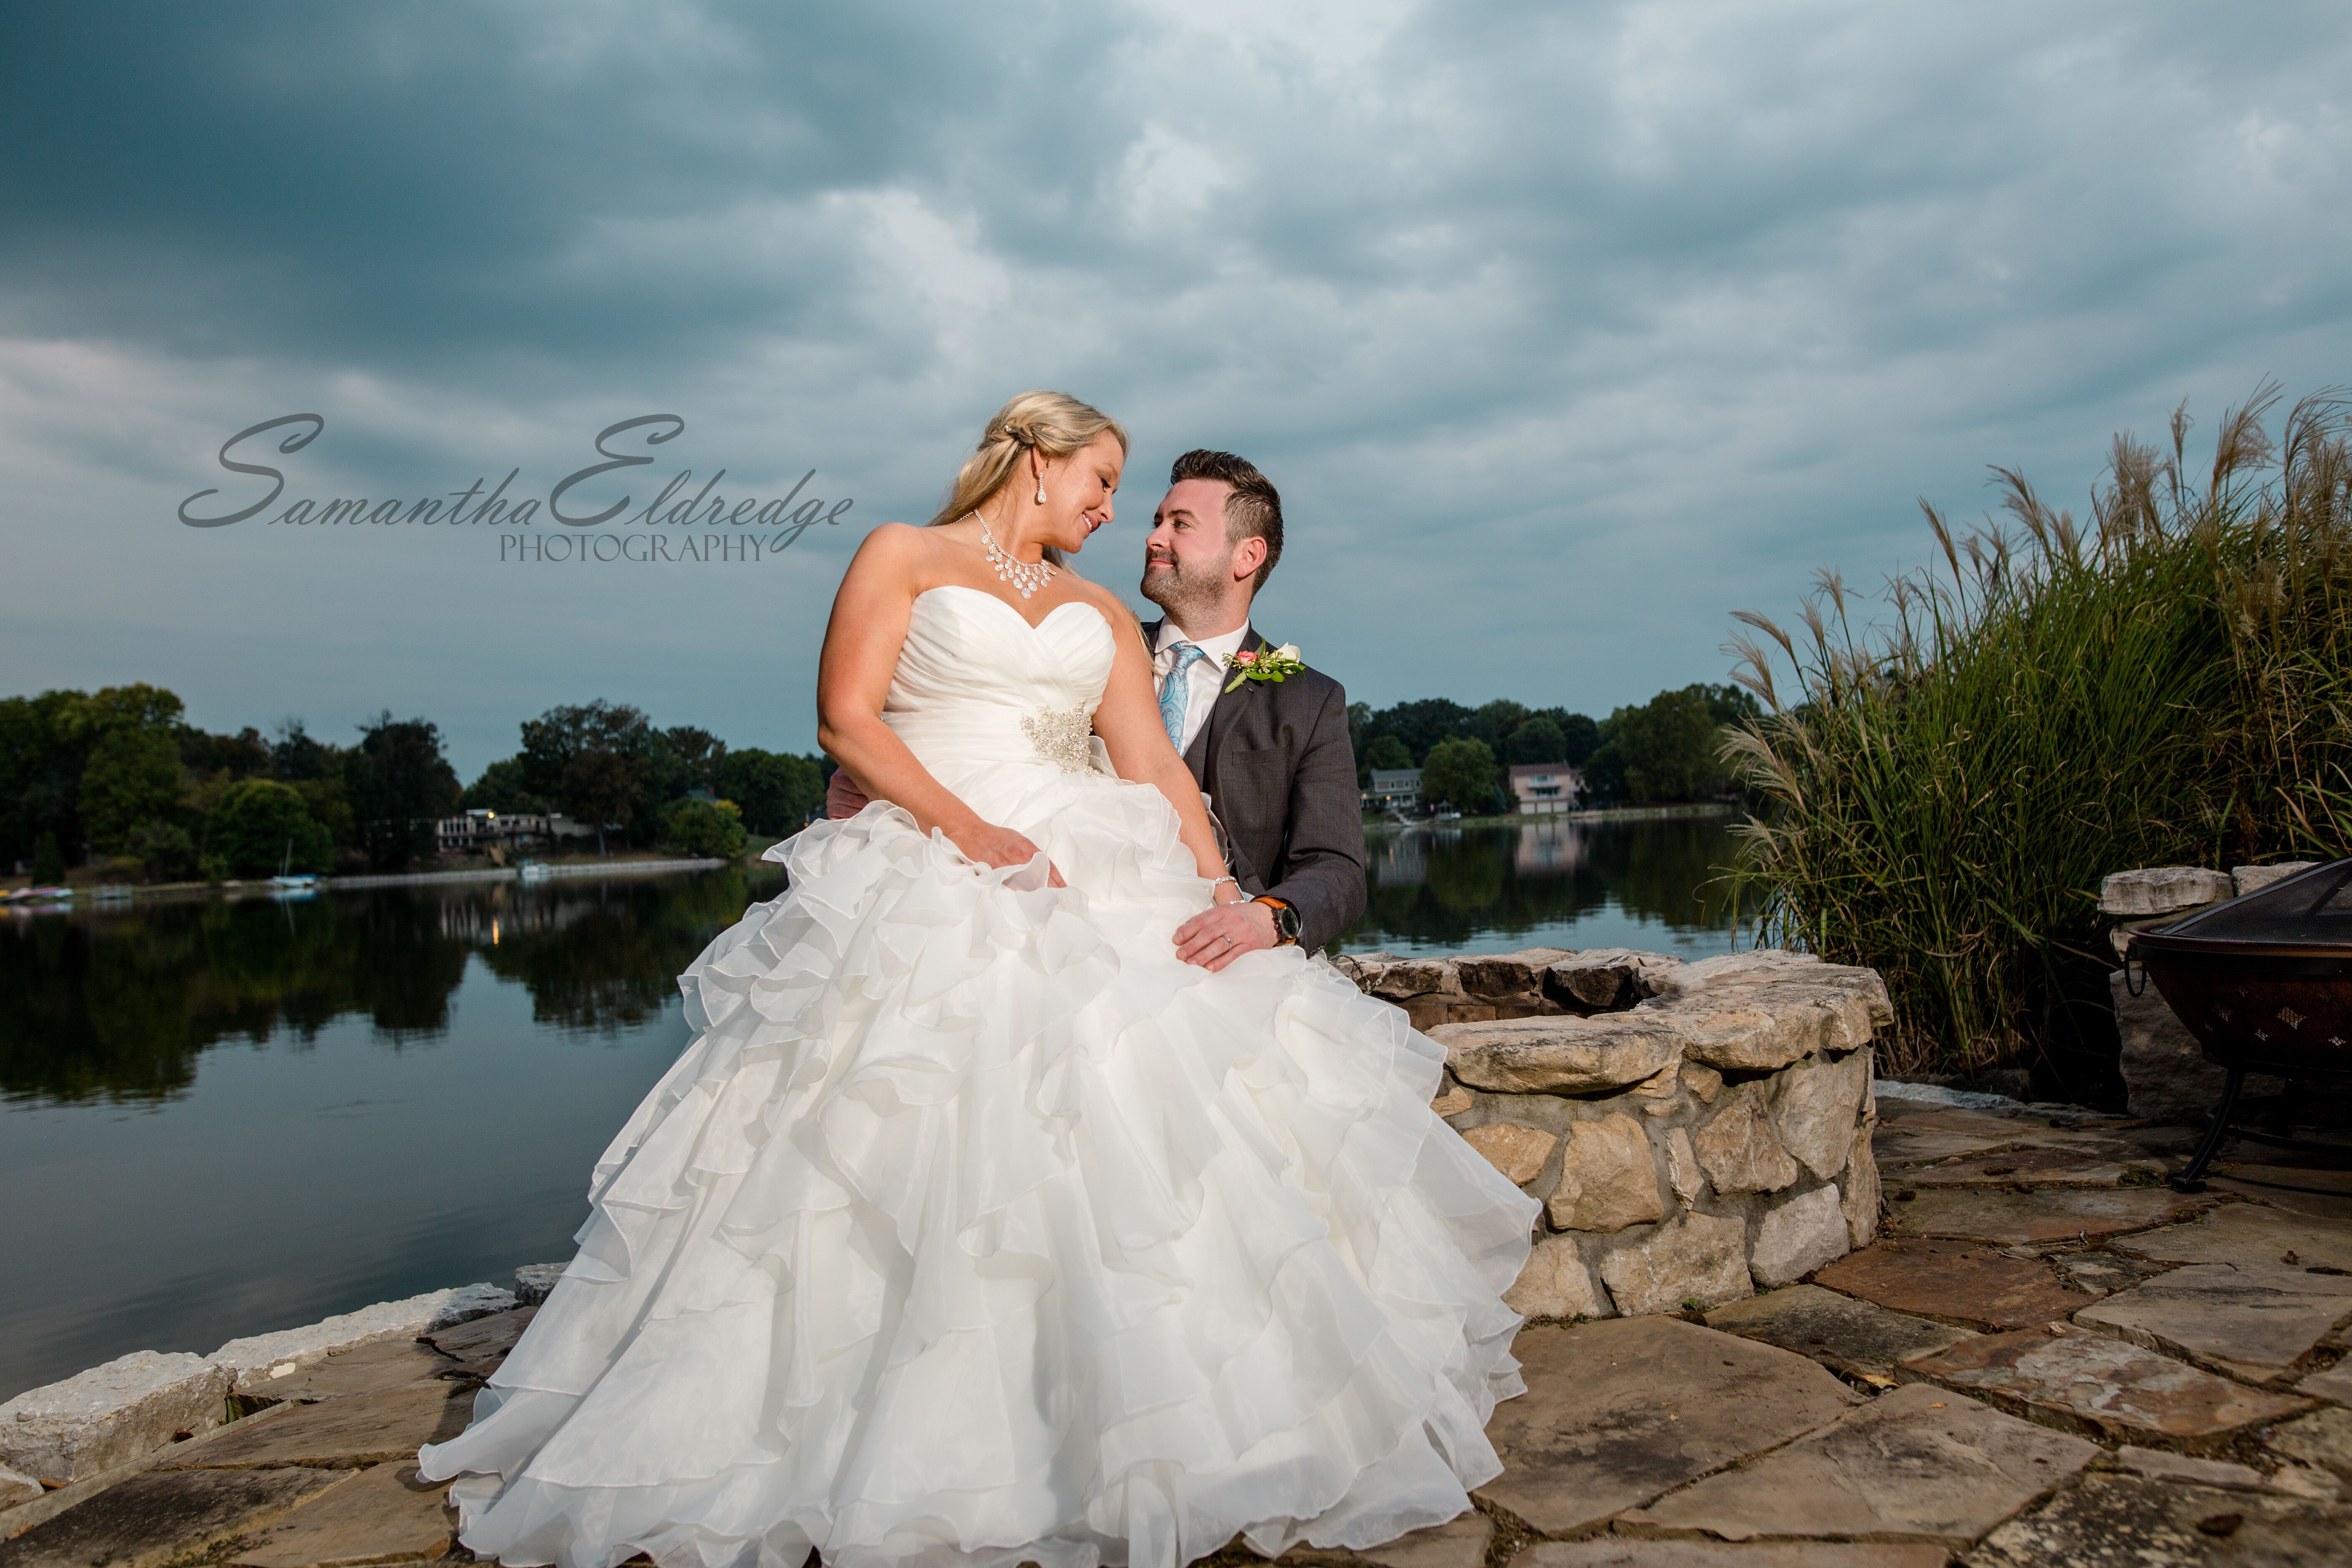 Samantha Eldredge Photography - indianapolis, IN